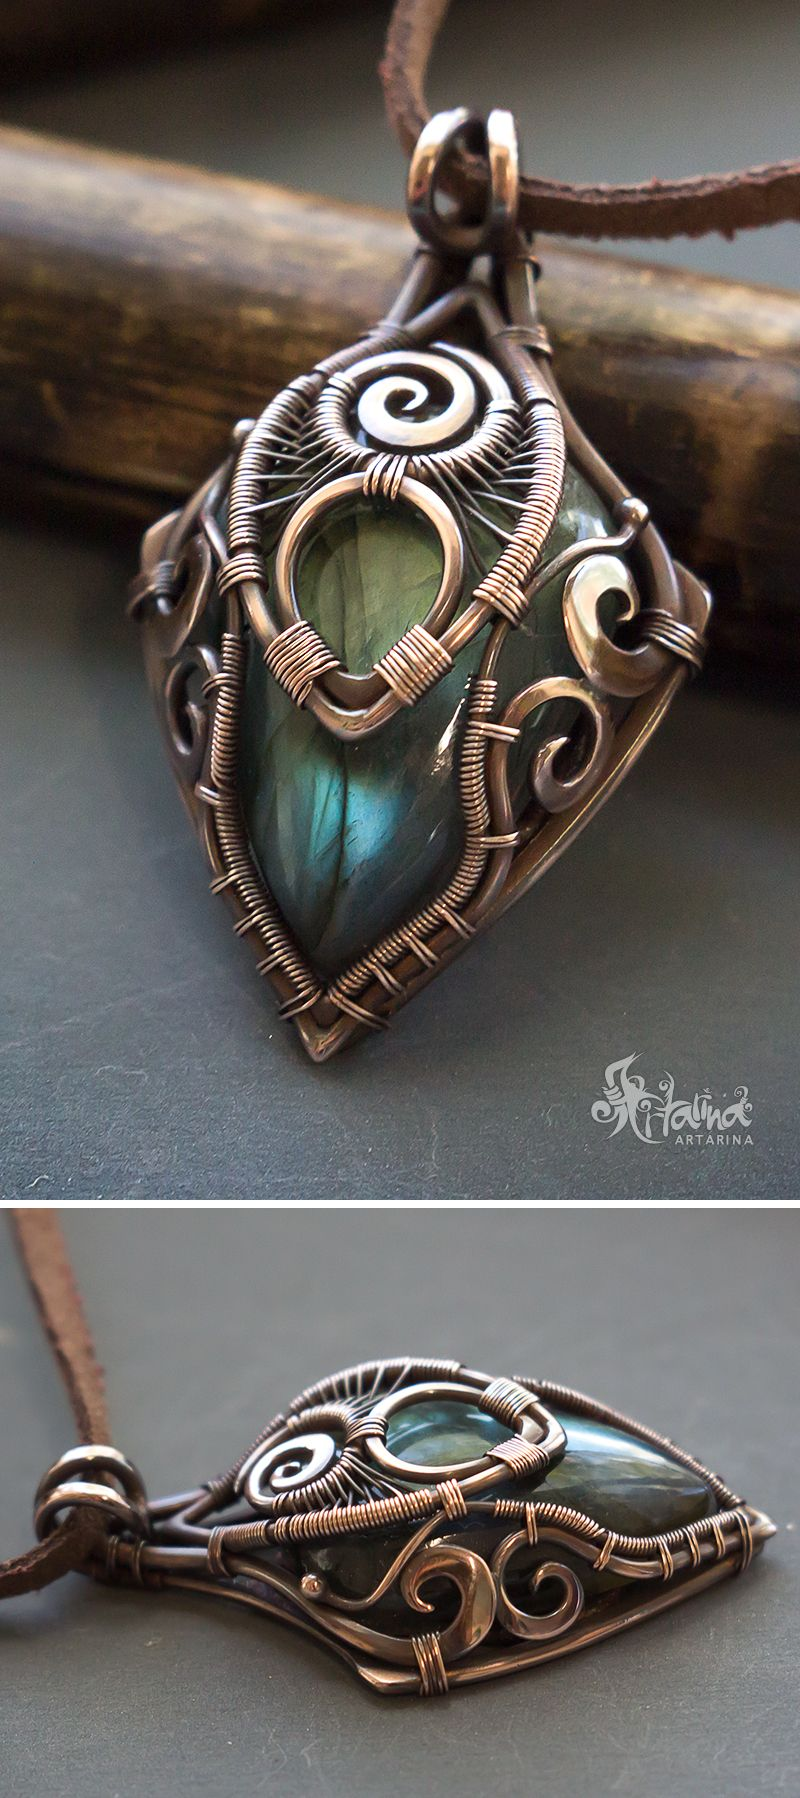 Artifact pendant fantasy pendant larp pinterest joyeras artifact pendant fantasy pendant aloadofball Image collections